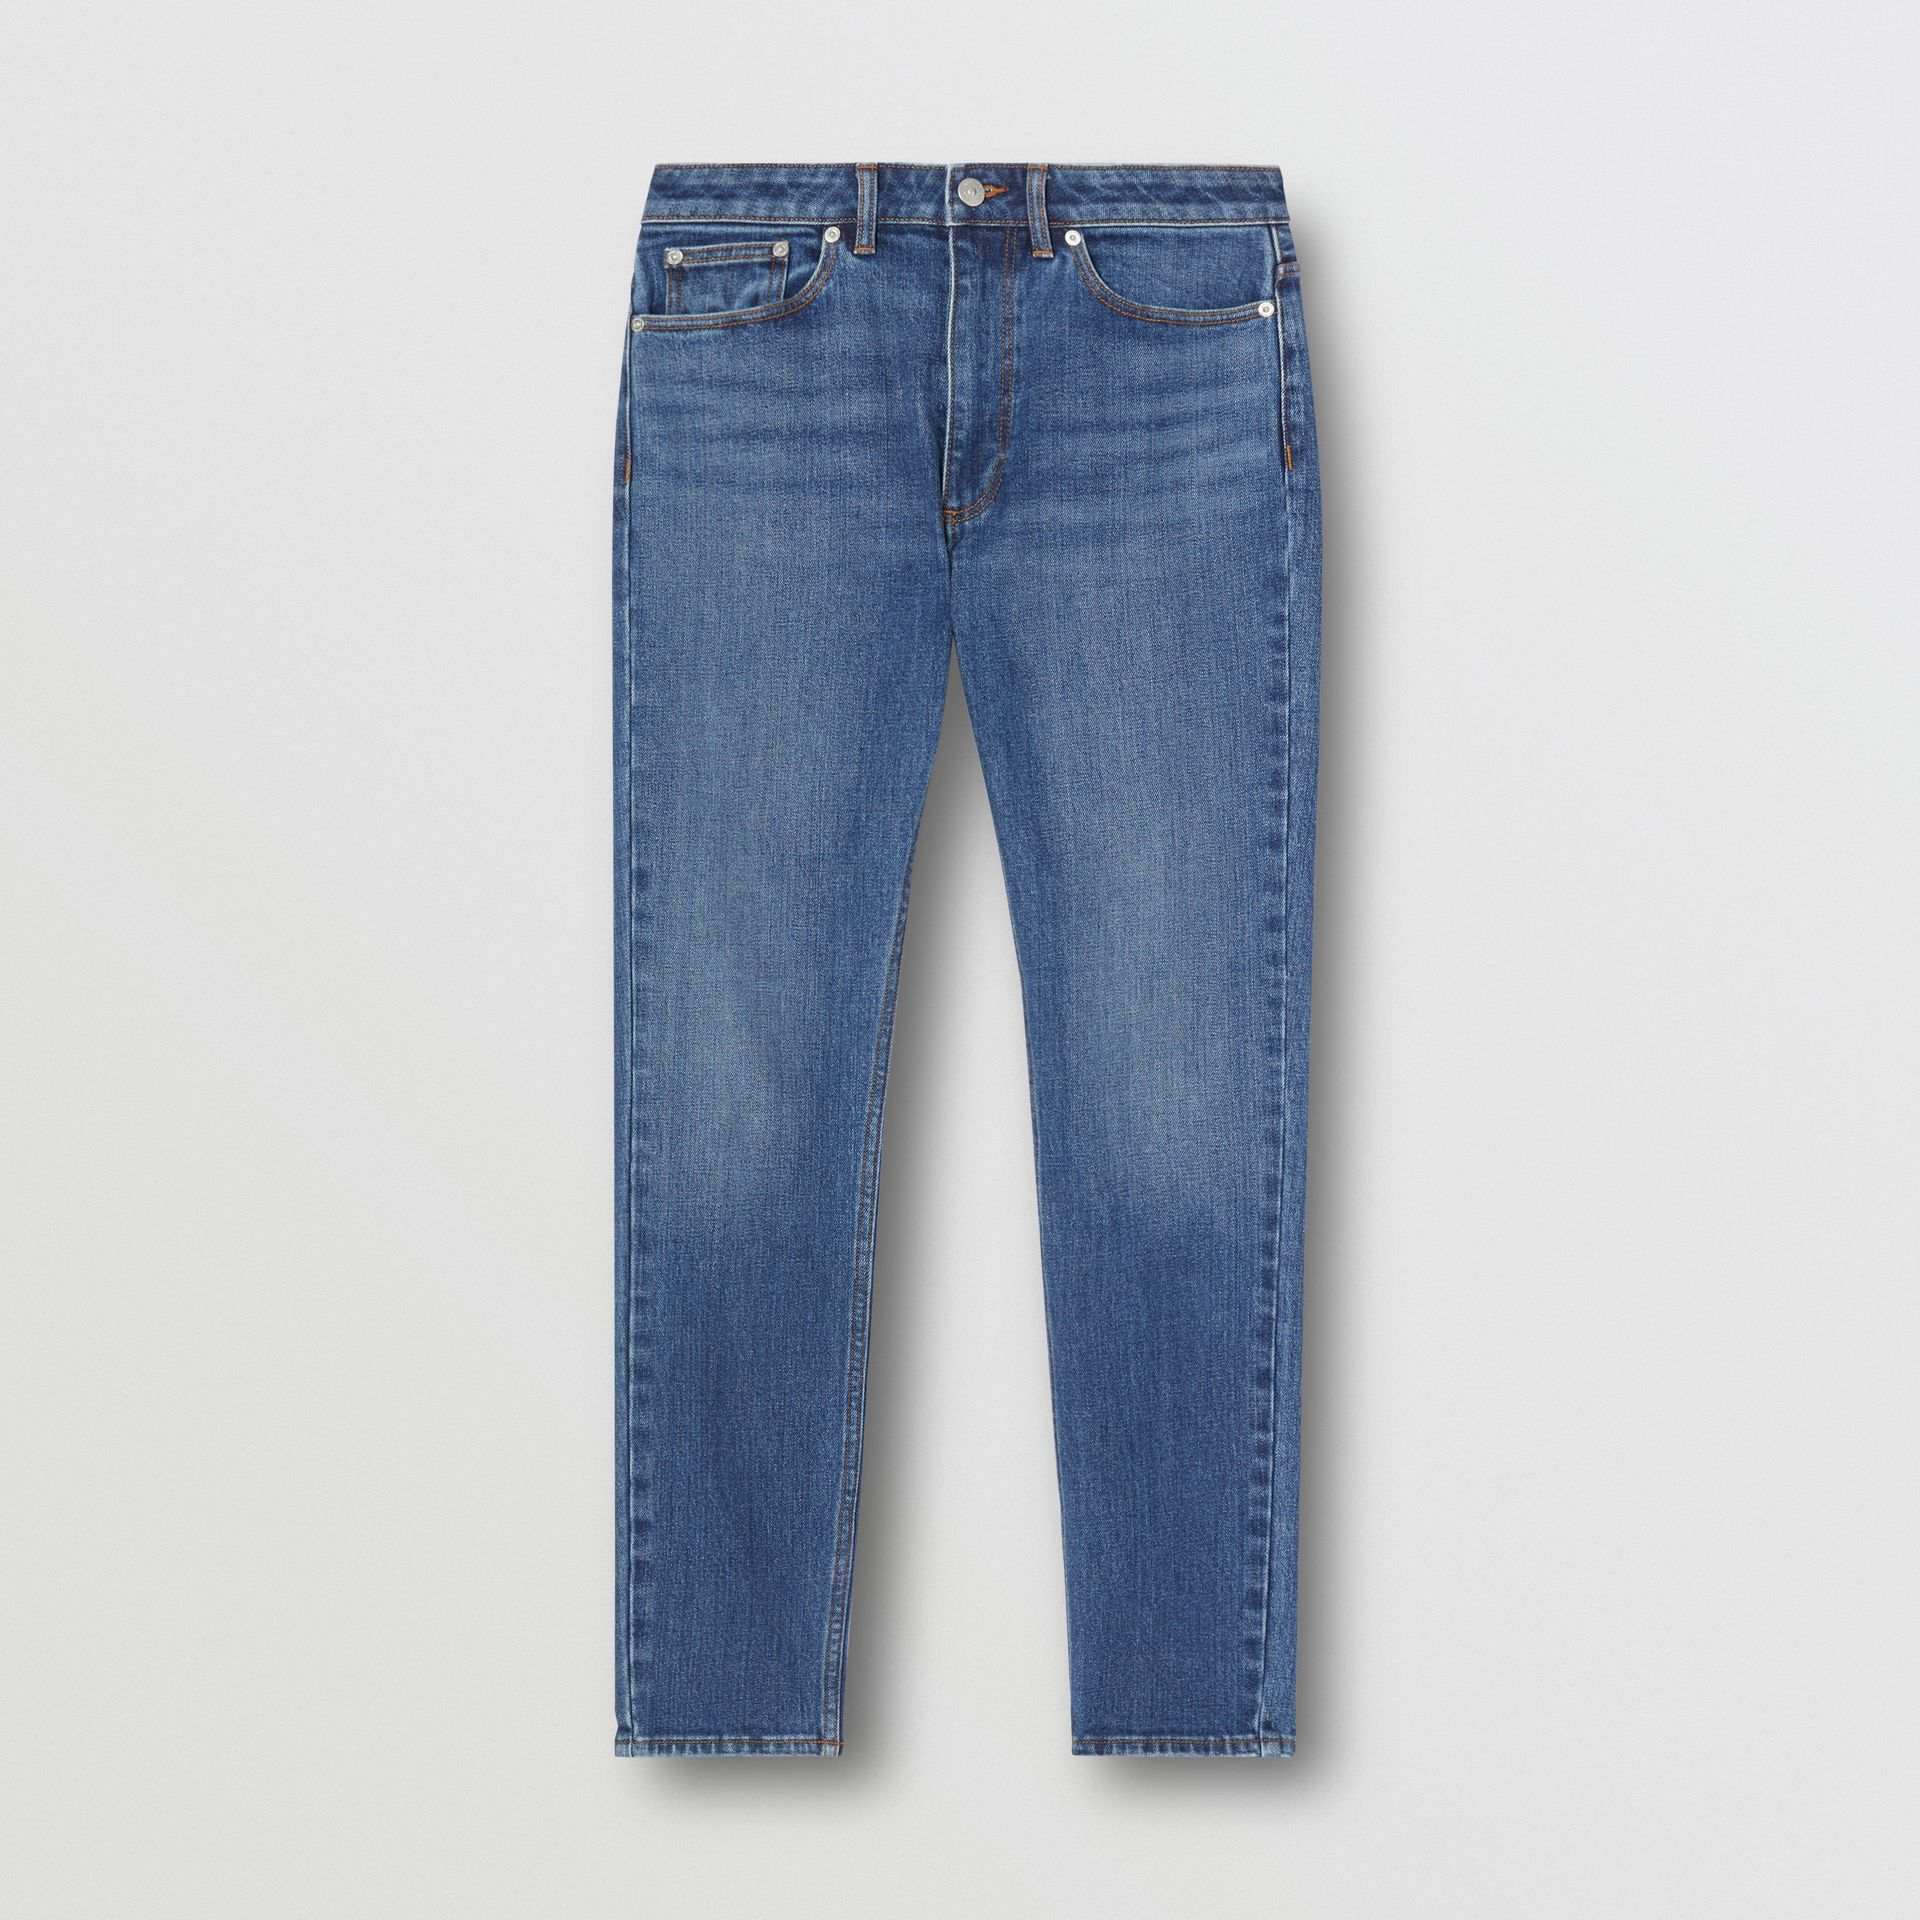 Skinny Fit Japanese Denim Jeans in Indigo Blue - Women | Burberry - gallery image 3